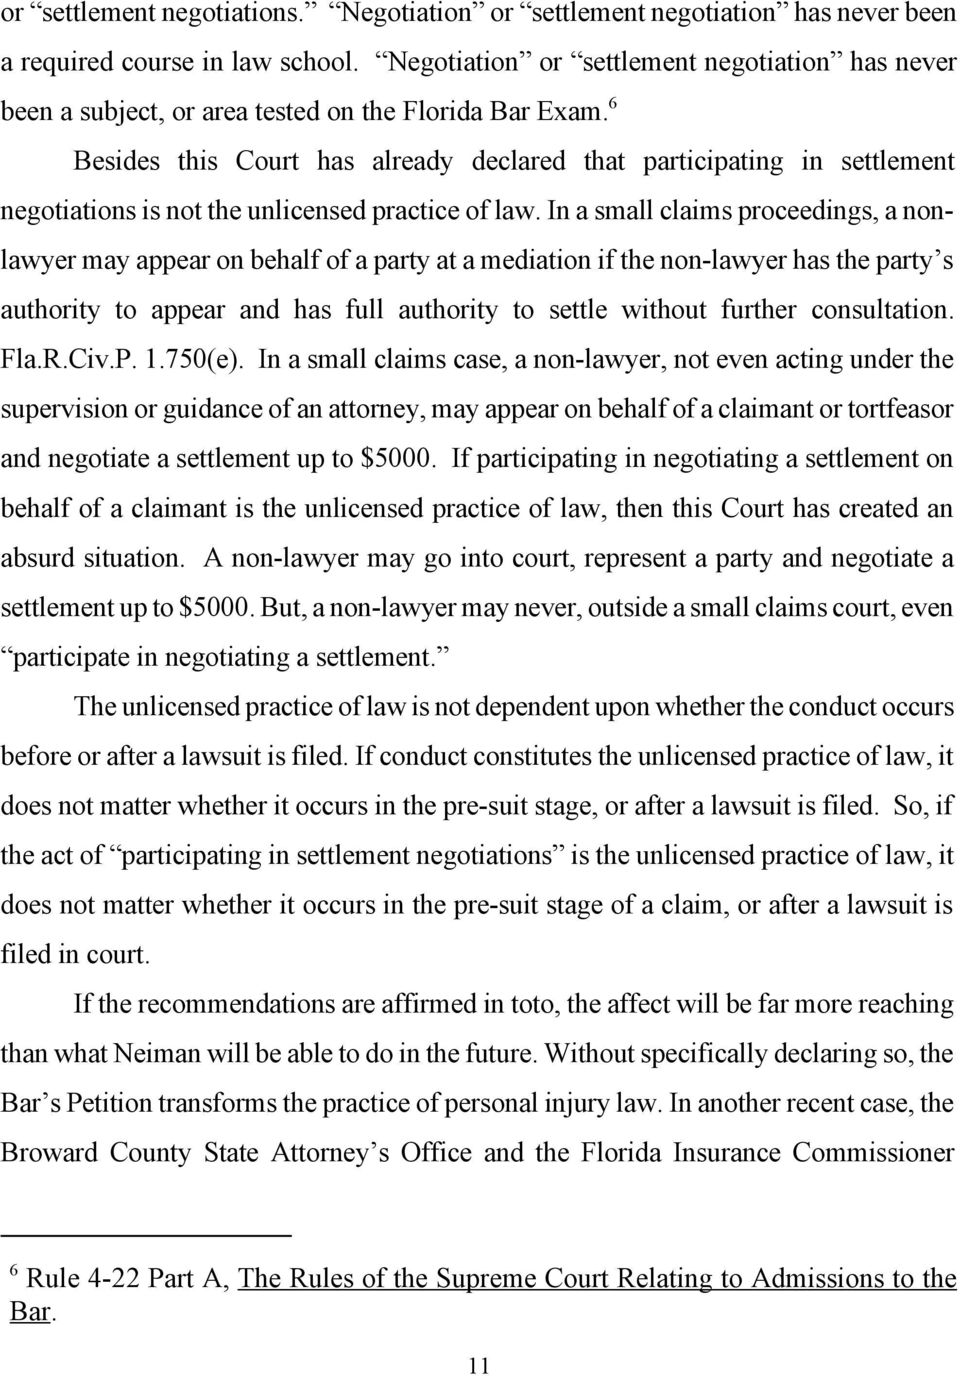 6 Besides this Court has already declared that participating in settlement negotiations is not the unlicensed practice of law.